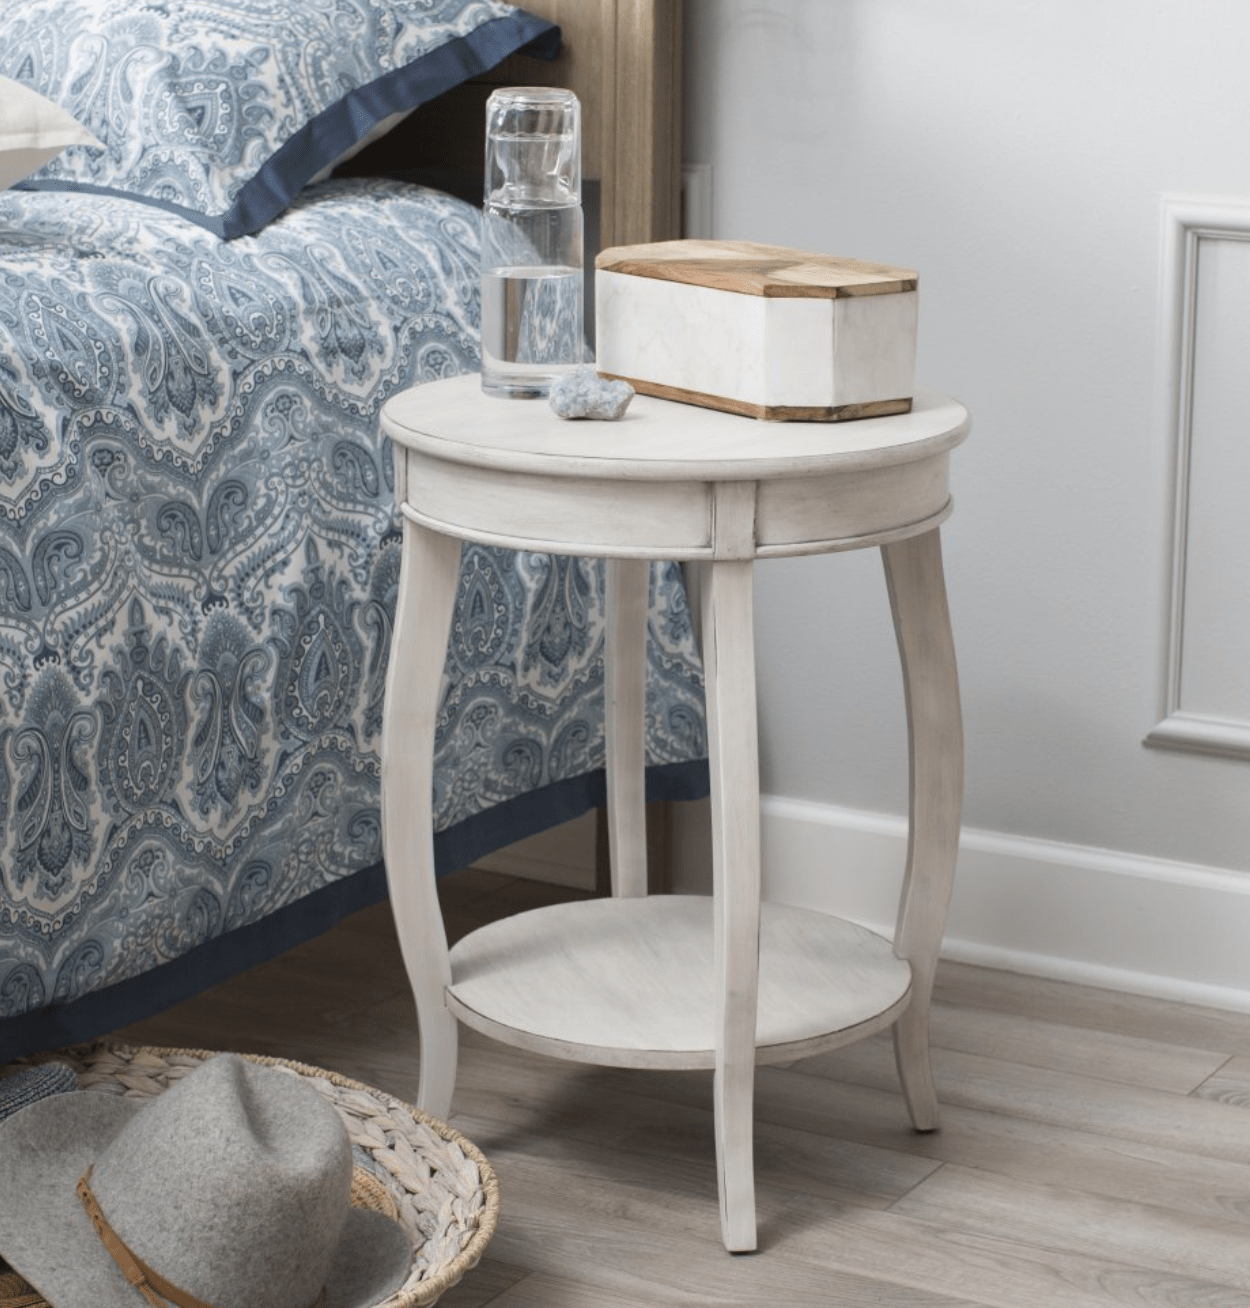 lovely small accent table for white round bedroom min with shelf compact lower and upper solid wood coffee end tables cylinder lamp modern tassel garland target trestle furniture